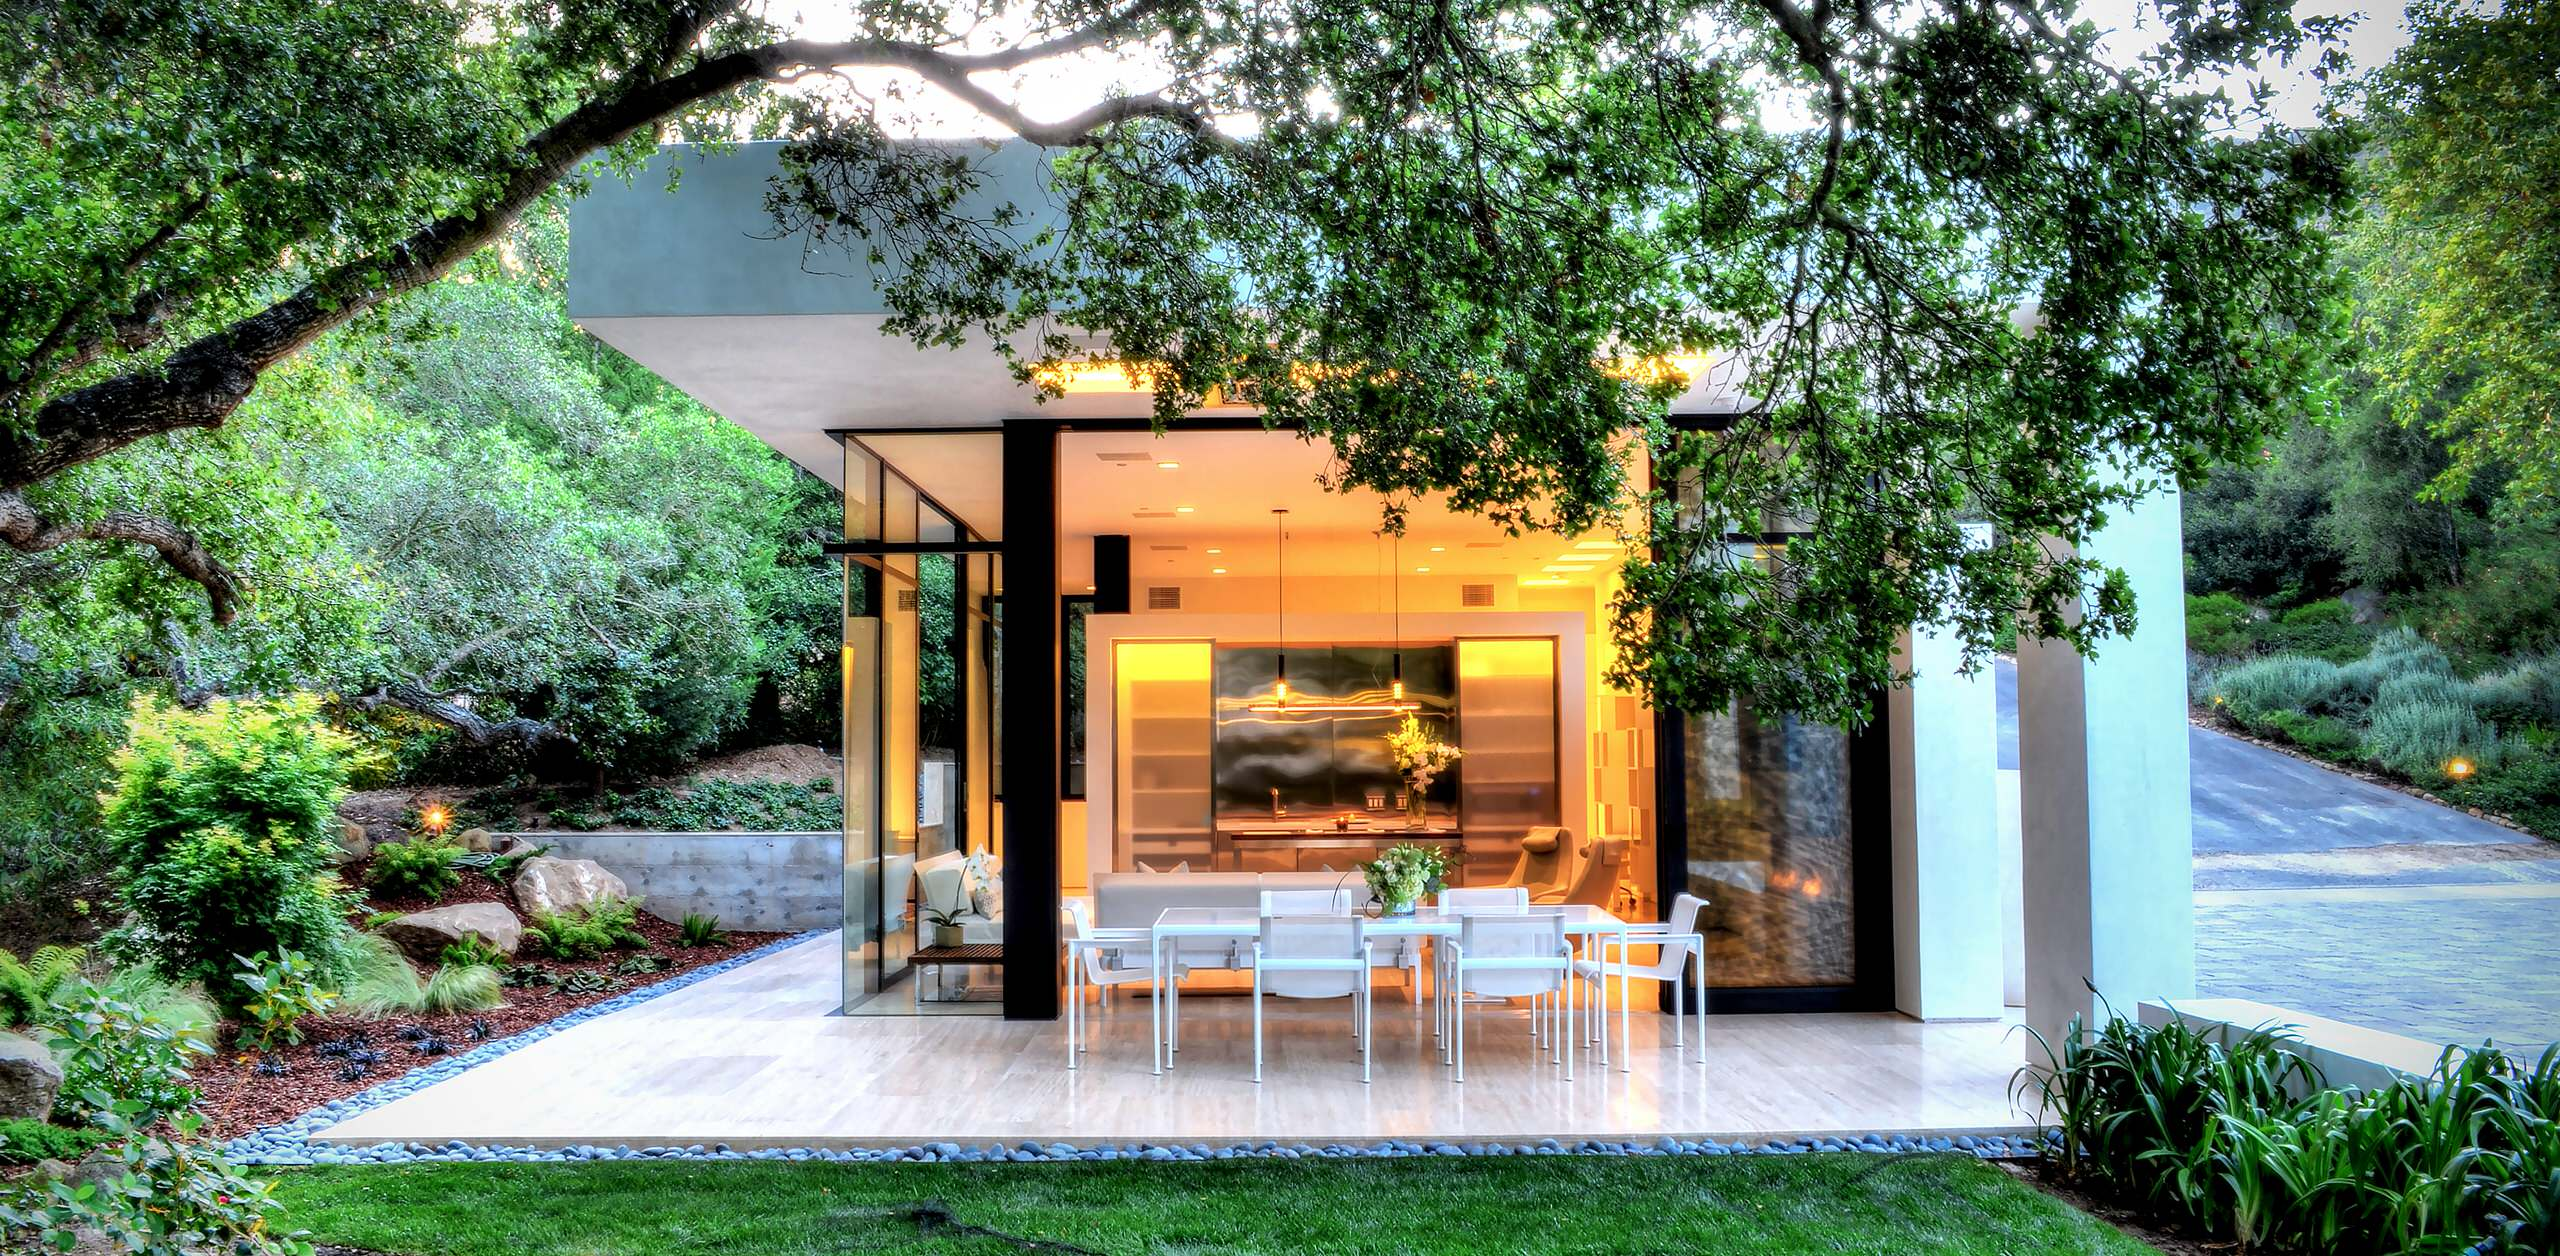 18 spectacular modern patio designs to enjoy the outdoors for Modern small patio ideas